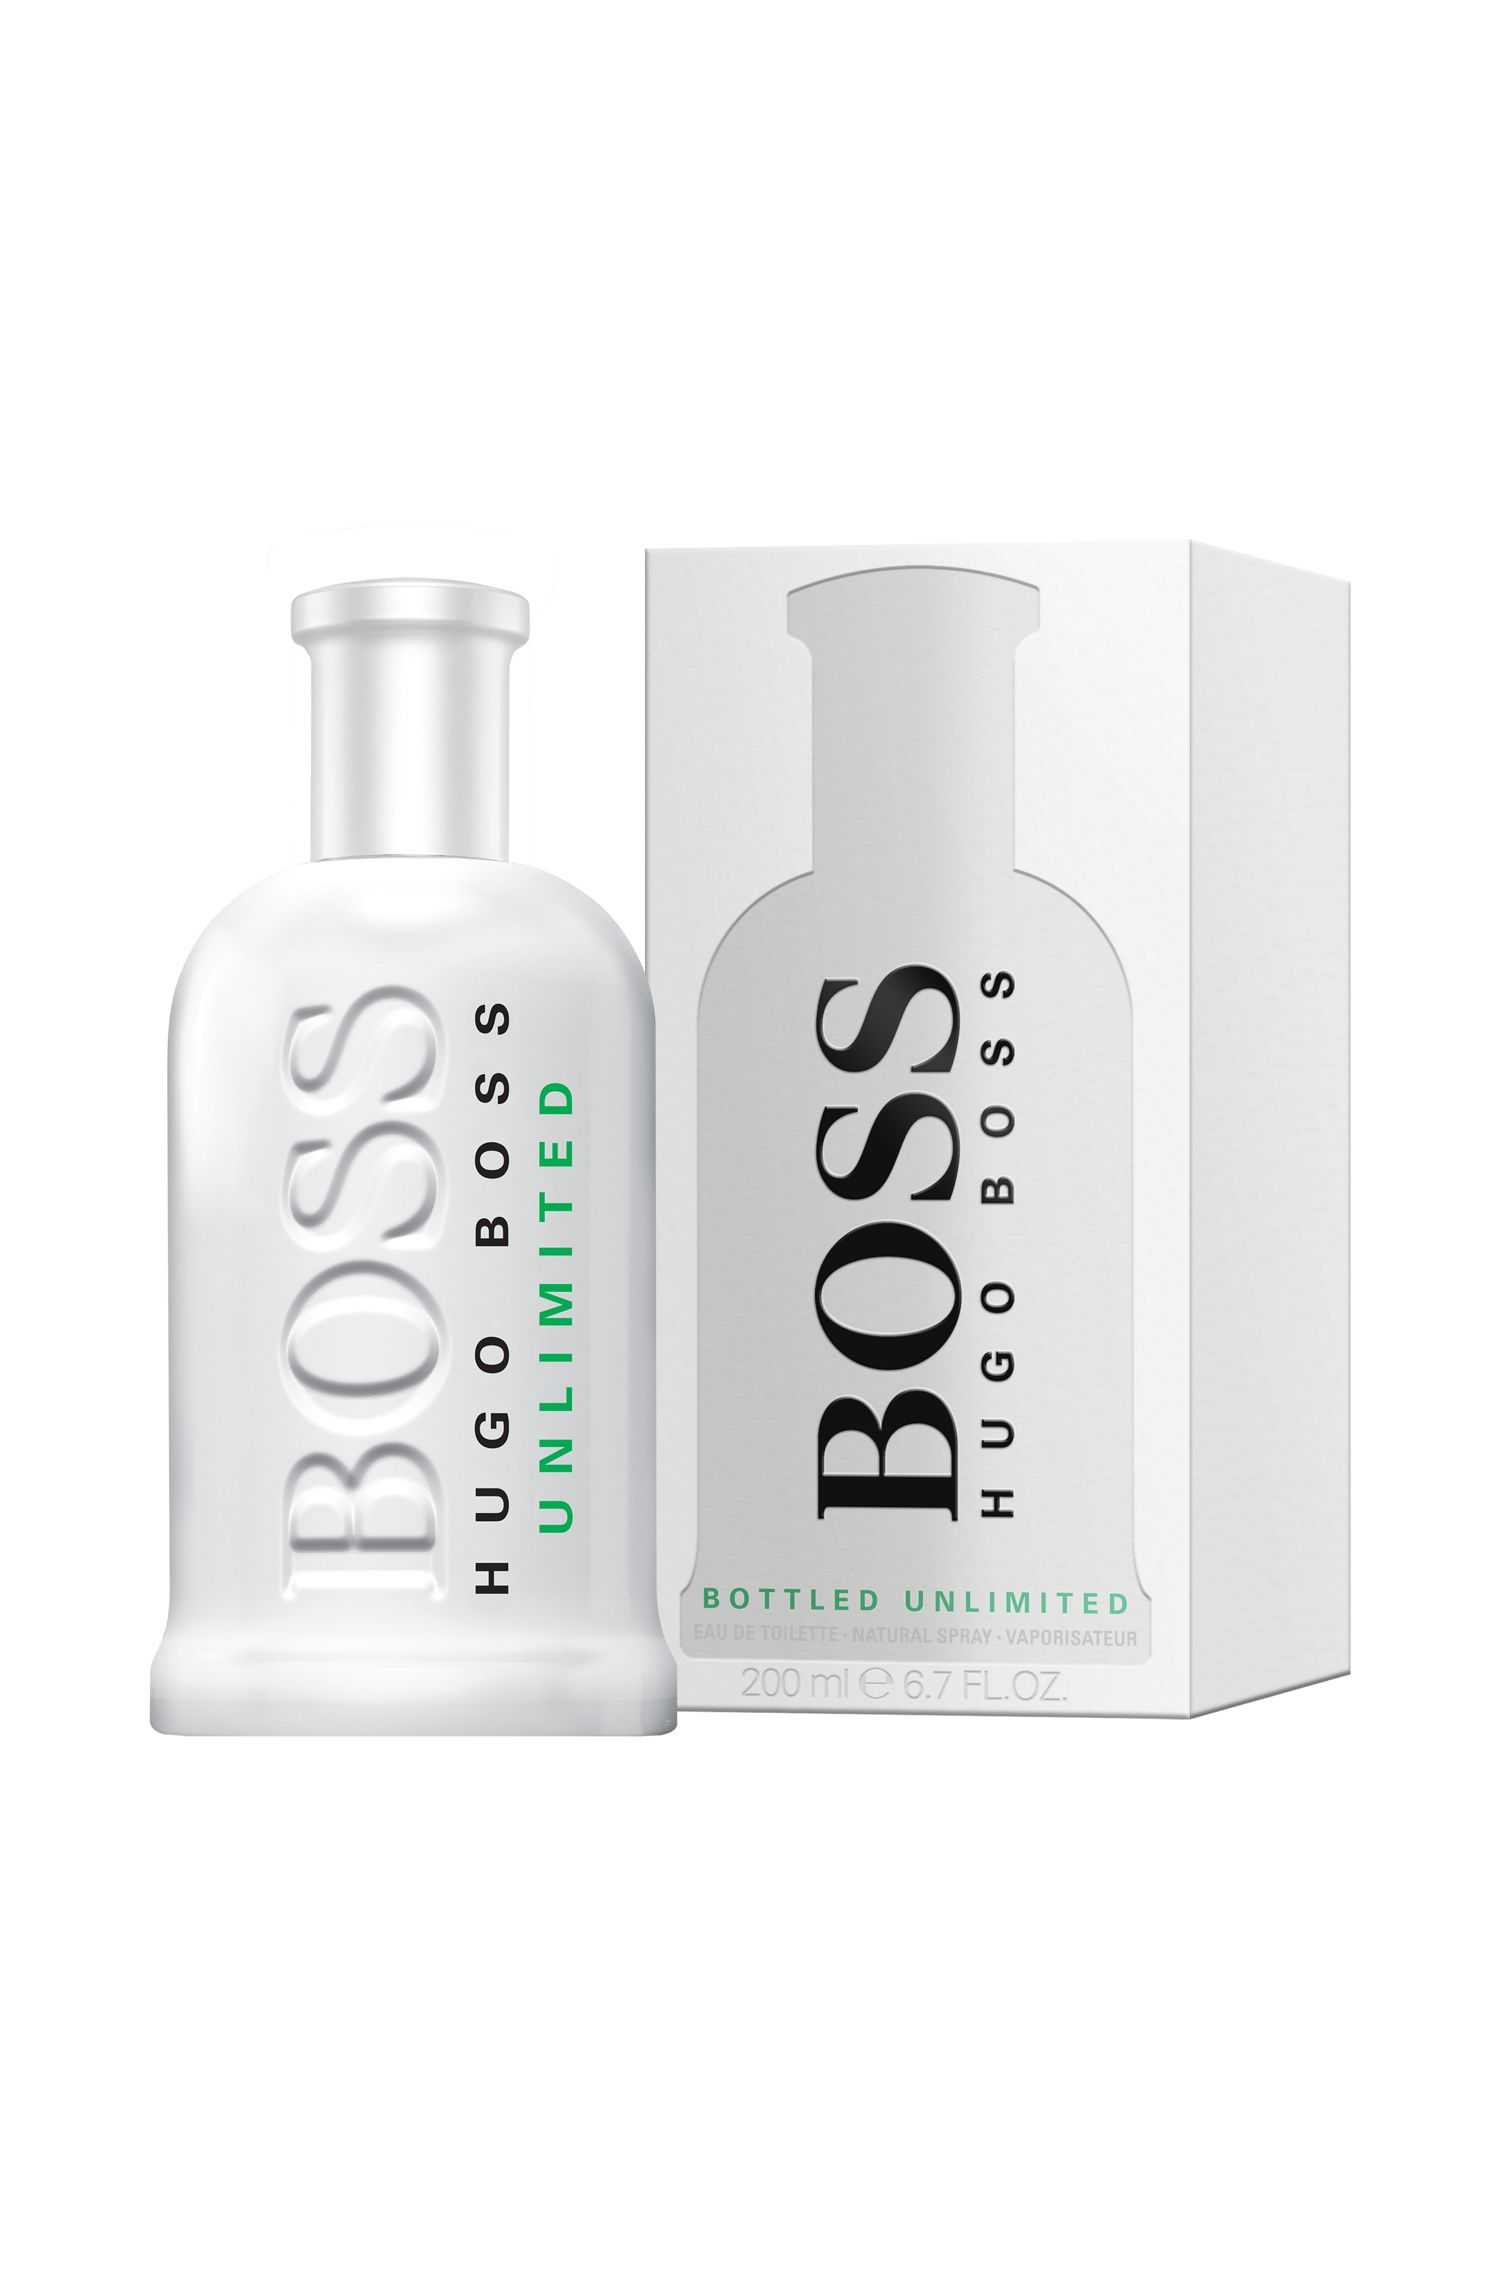 BOSS Bottled Unlimited eau de toilette 200ml, Assorted-Pre-Pack